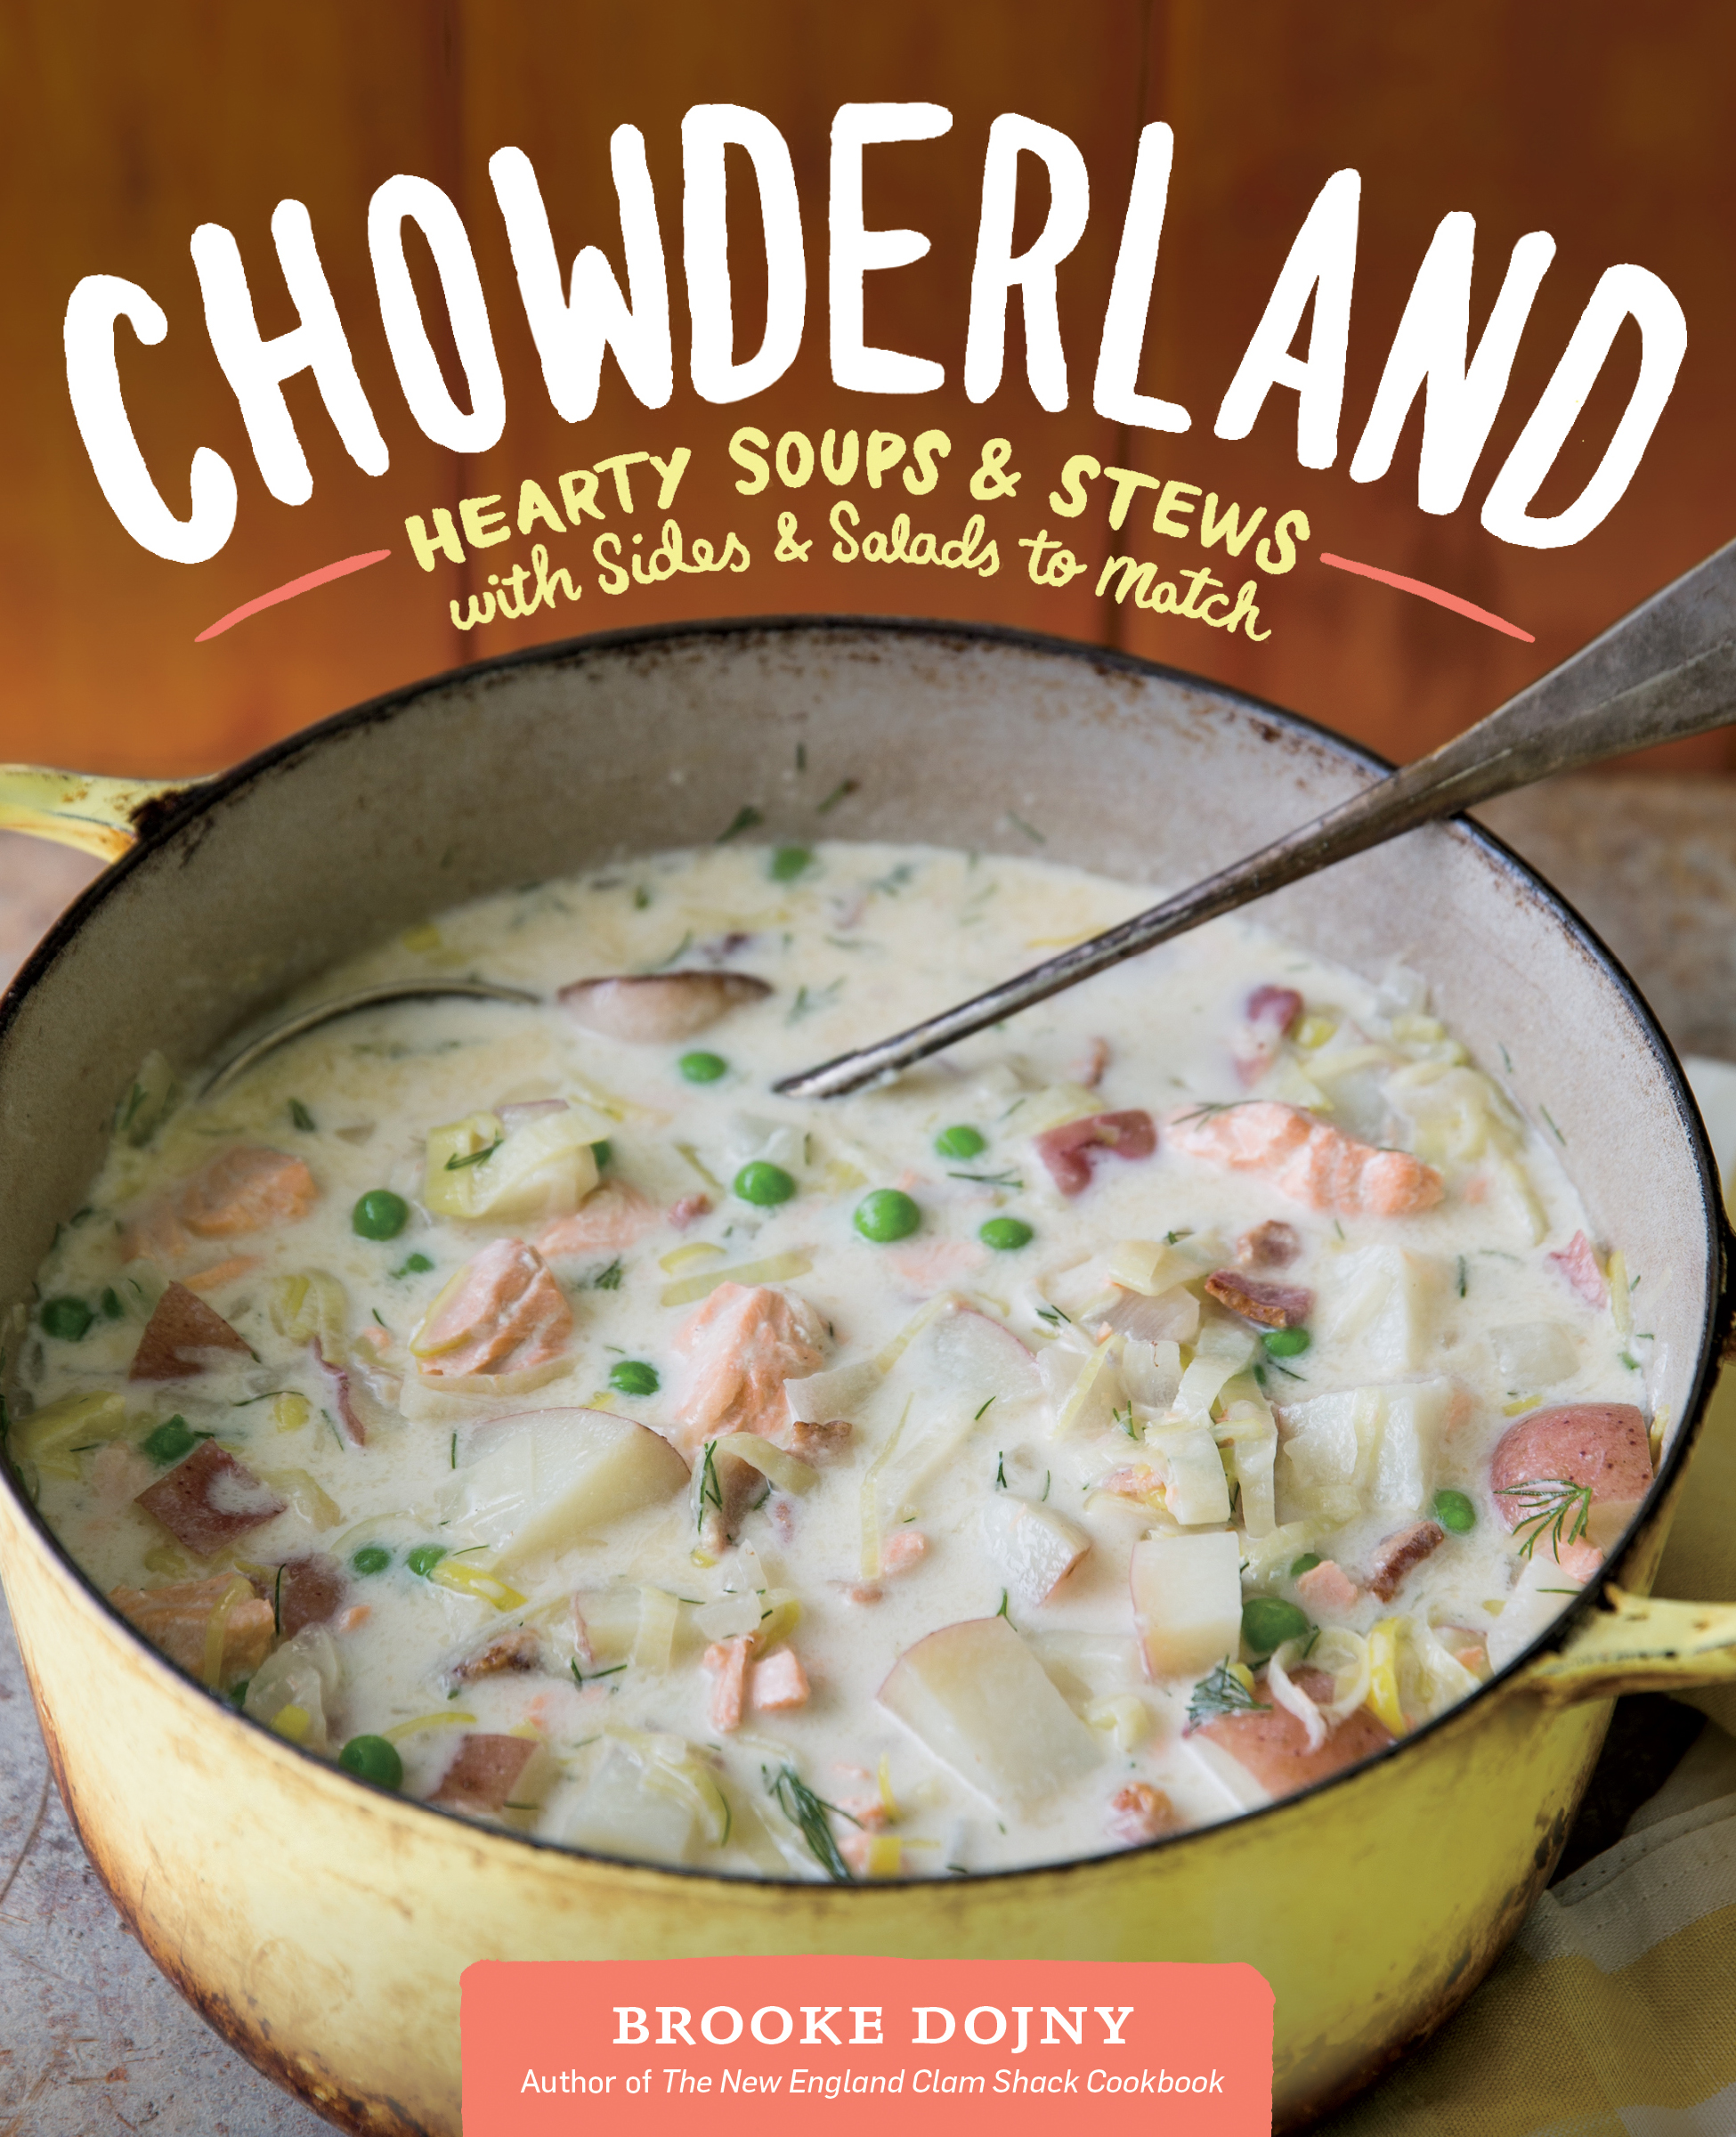 Chowderland Hearty Soups & Stews with Sides & Salads to Match - Brooke Dojny